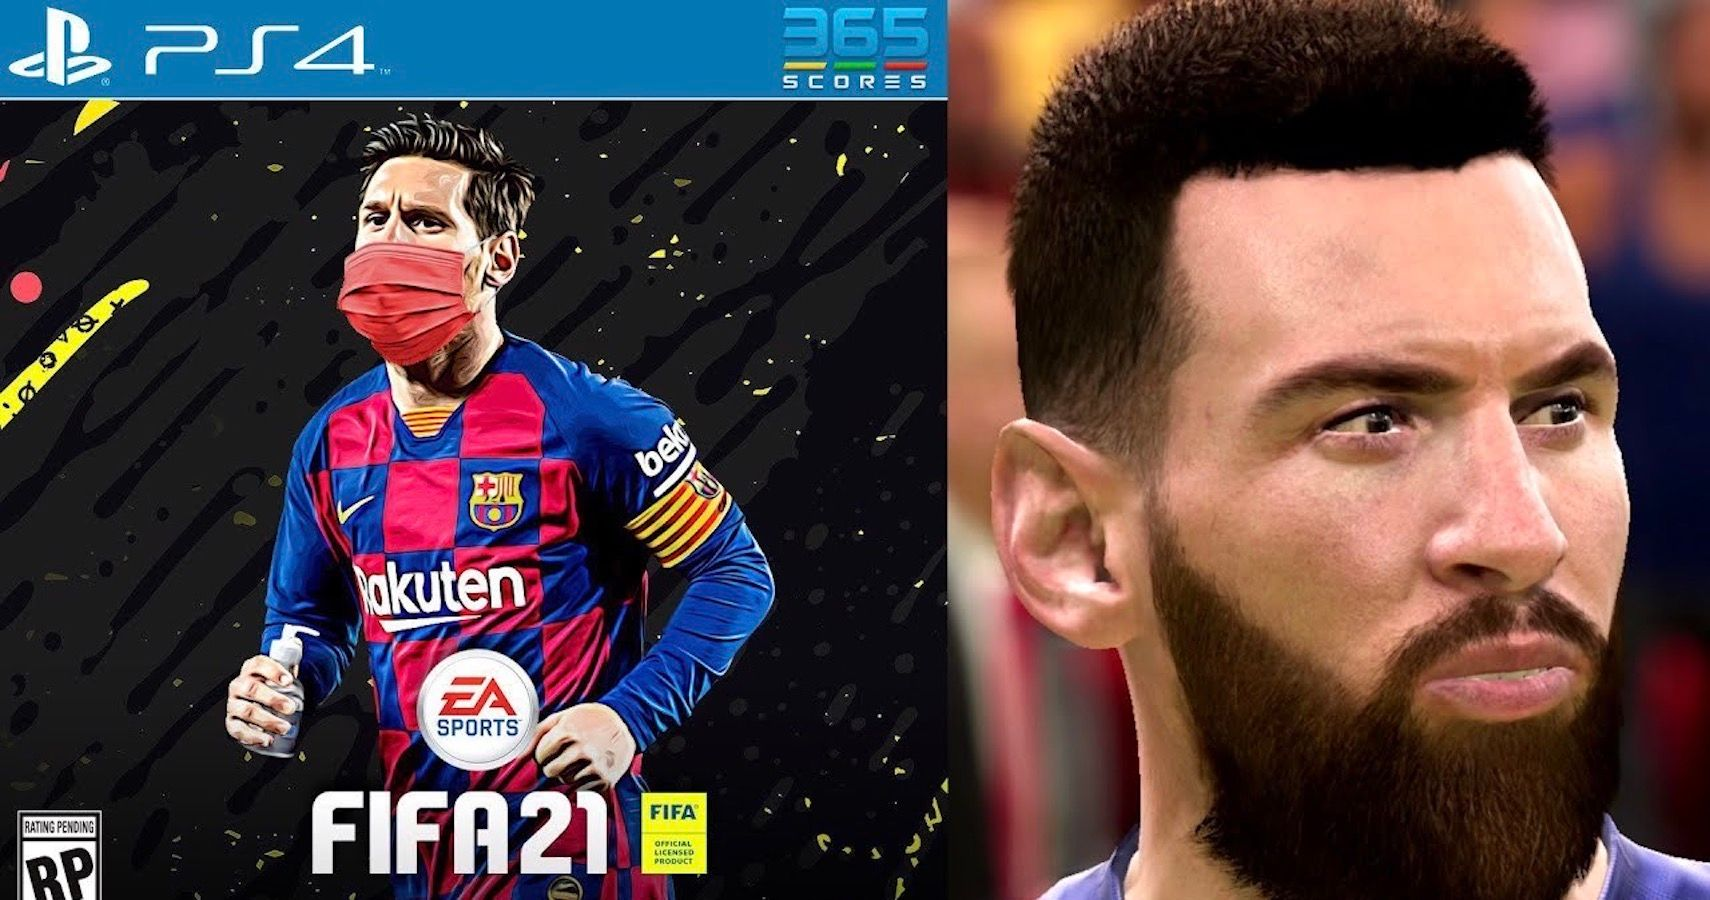 FIFA 21 Updates Messi's Face After Fans Complain He Looked ...